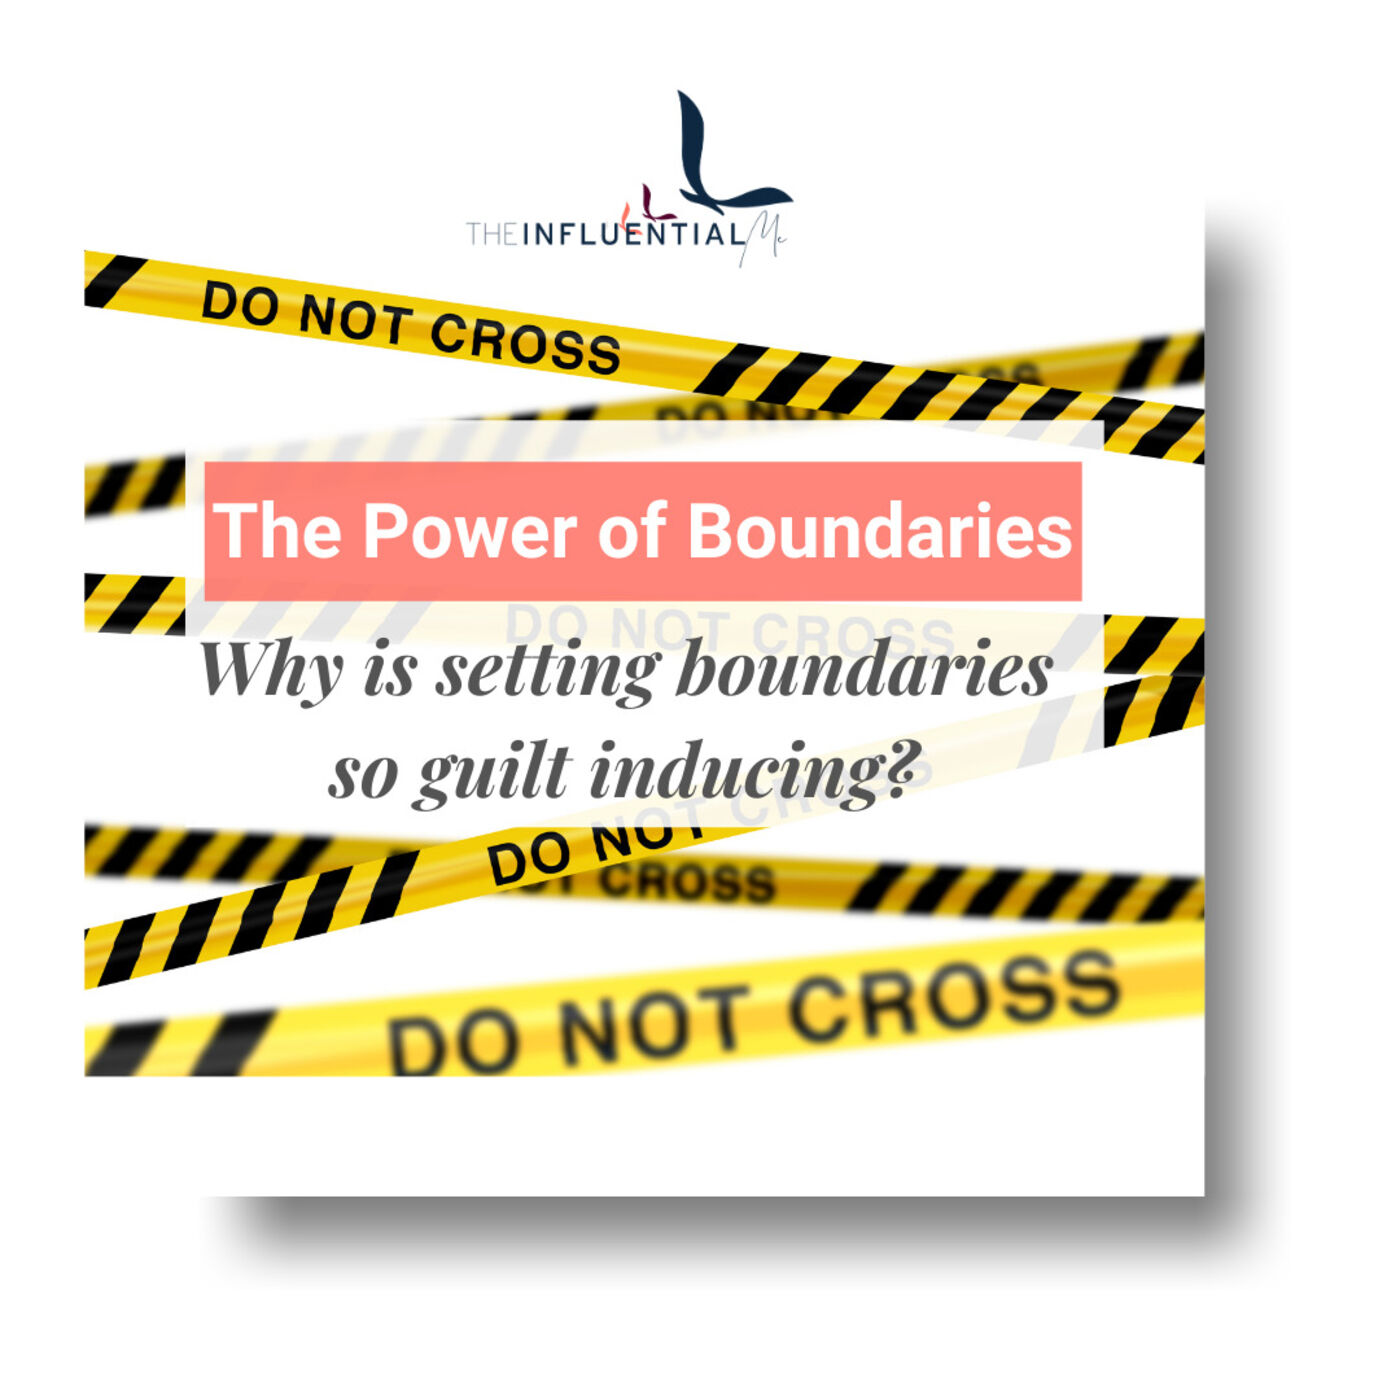 The Power of Boundaries: Why is setting boundaries so guilt inducing?